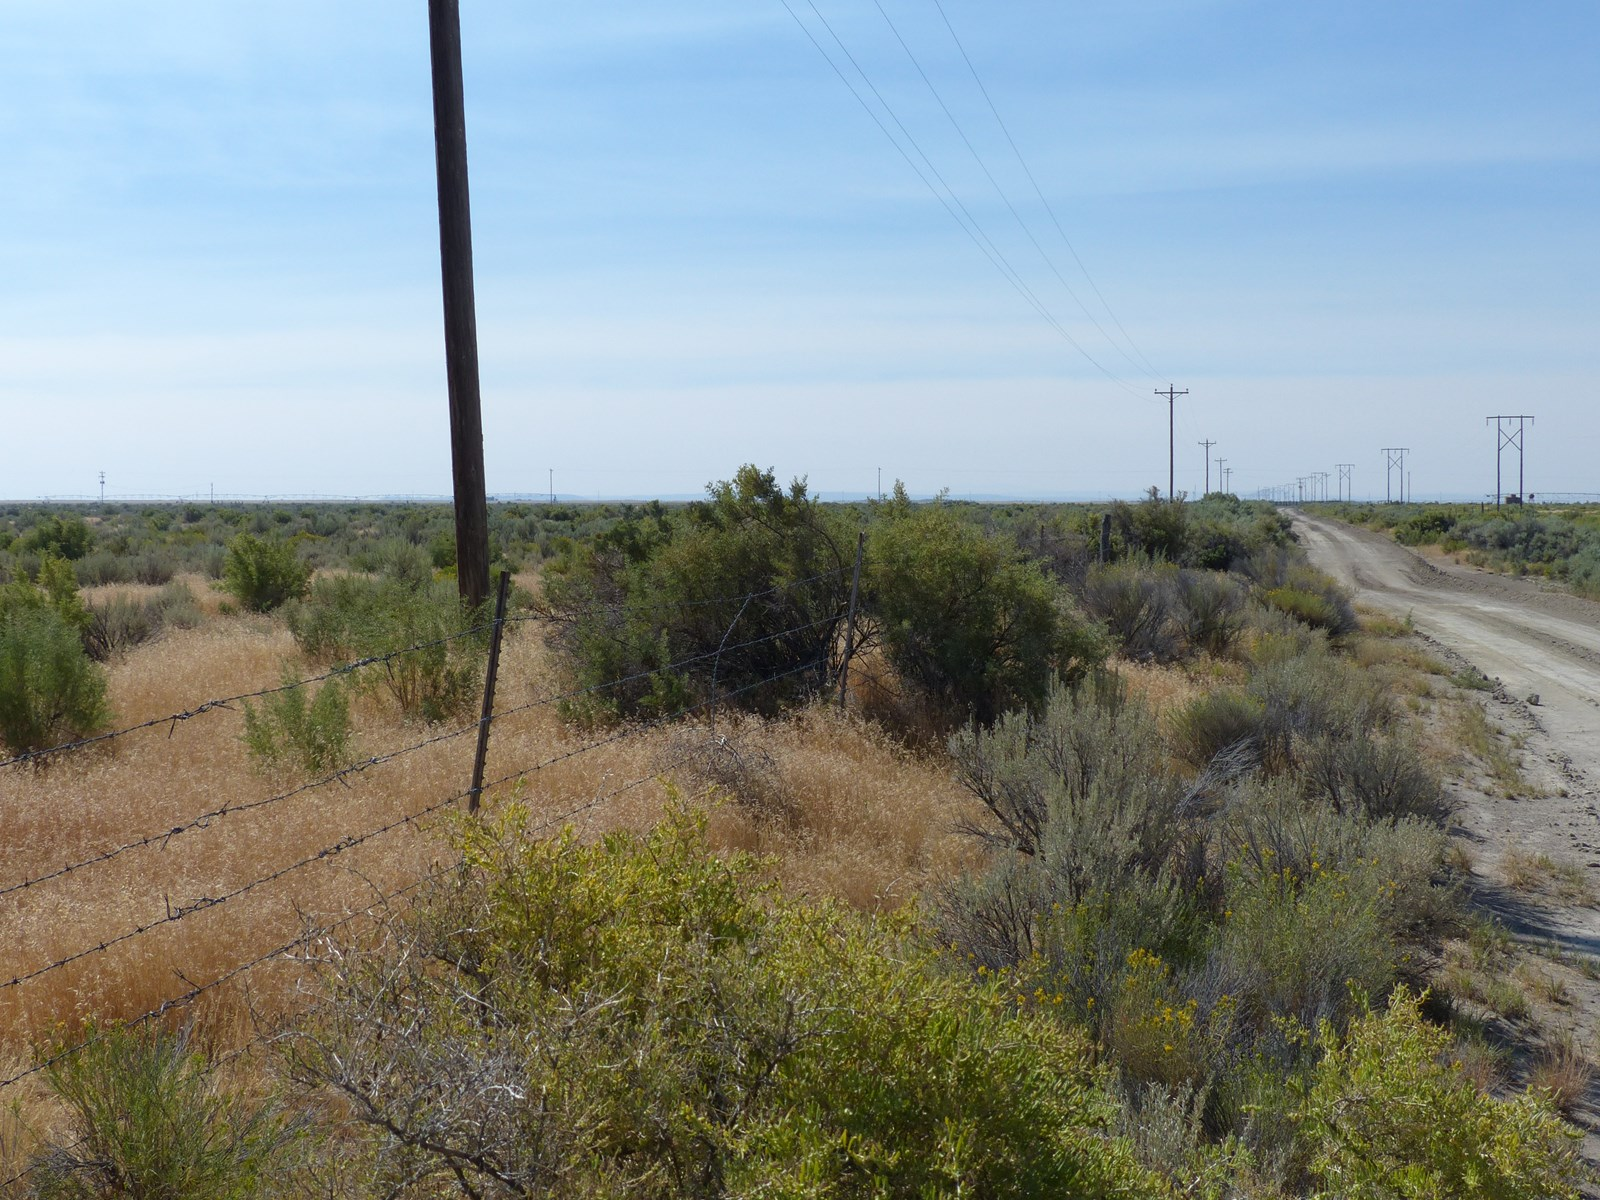 BURNS, OR - 40 ACRES - FENCED - POWER BORDERS PROPERTY